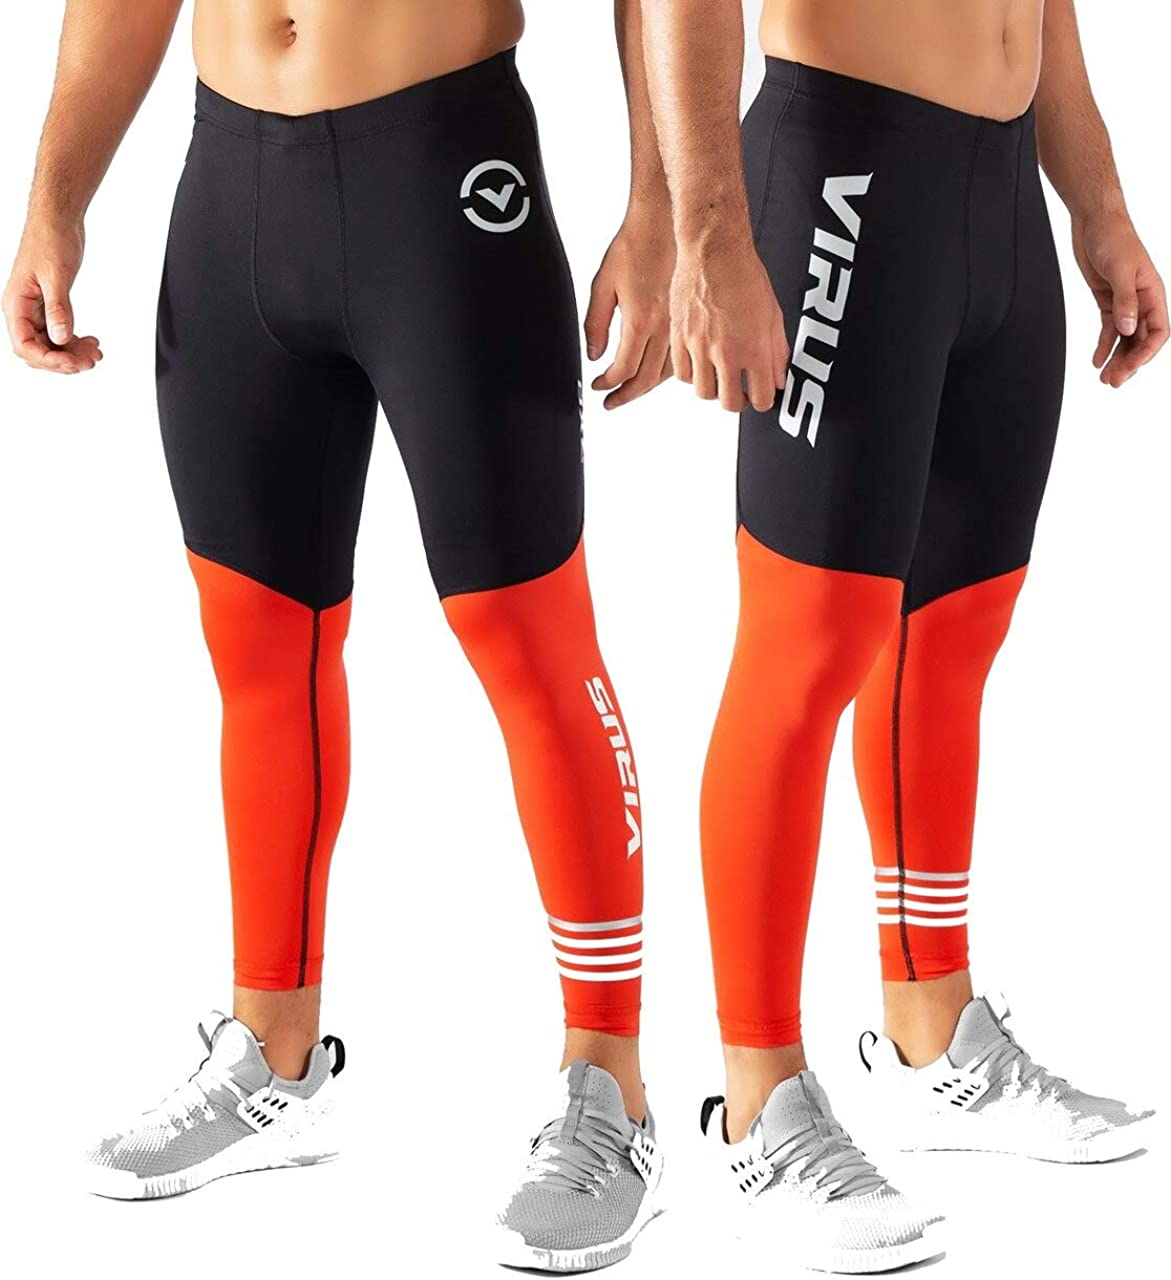 Virus Mens RX8.5 Stay Cool Compression Pants Black/Blood Orange (Black/Blood Orange, Large)